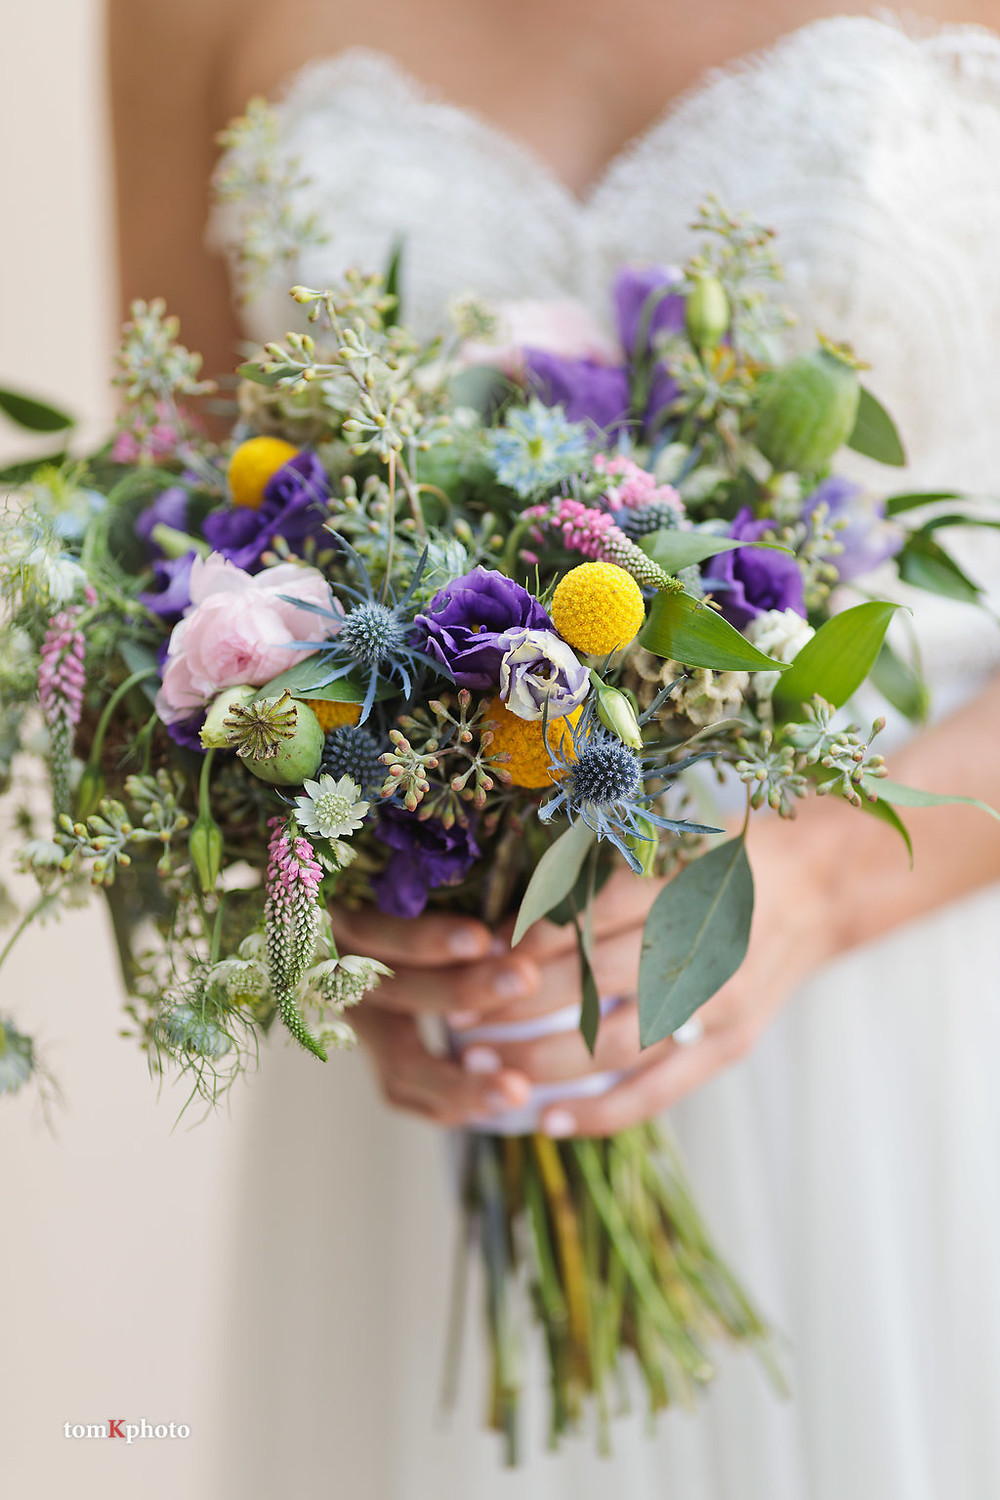 Vail Wedding Planner - Vail Bouquet